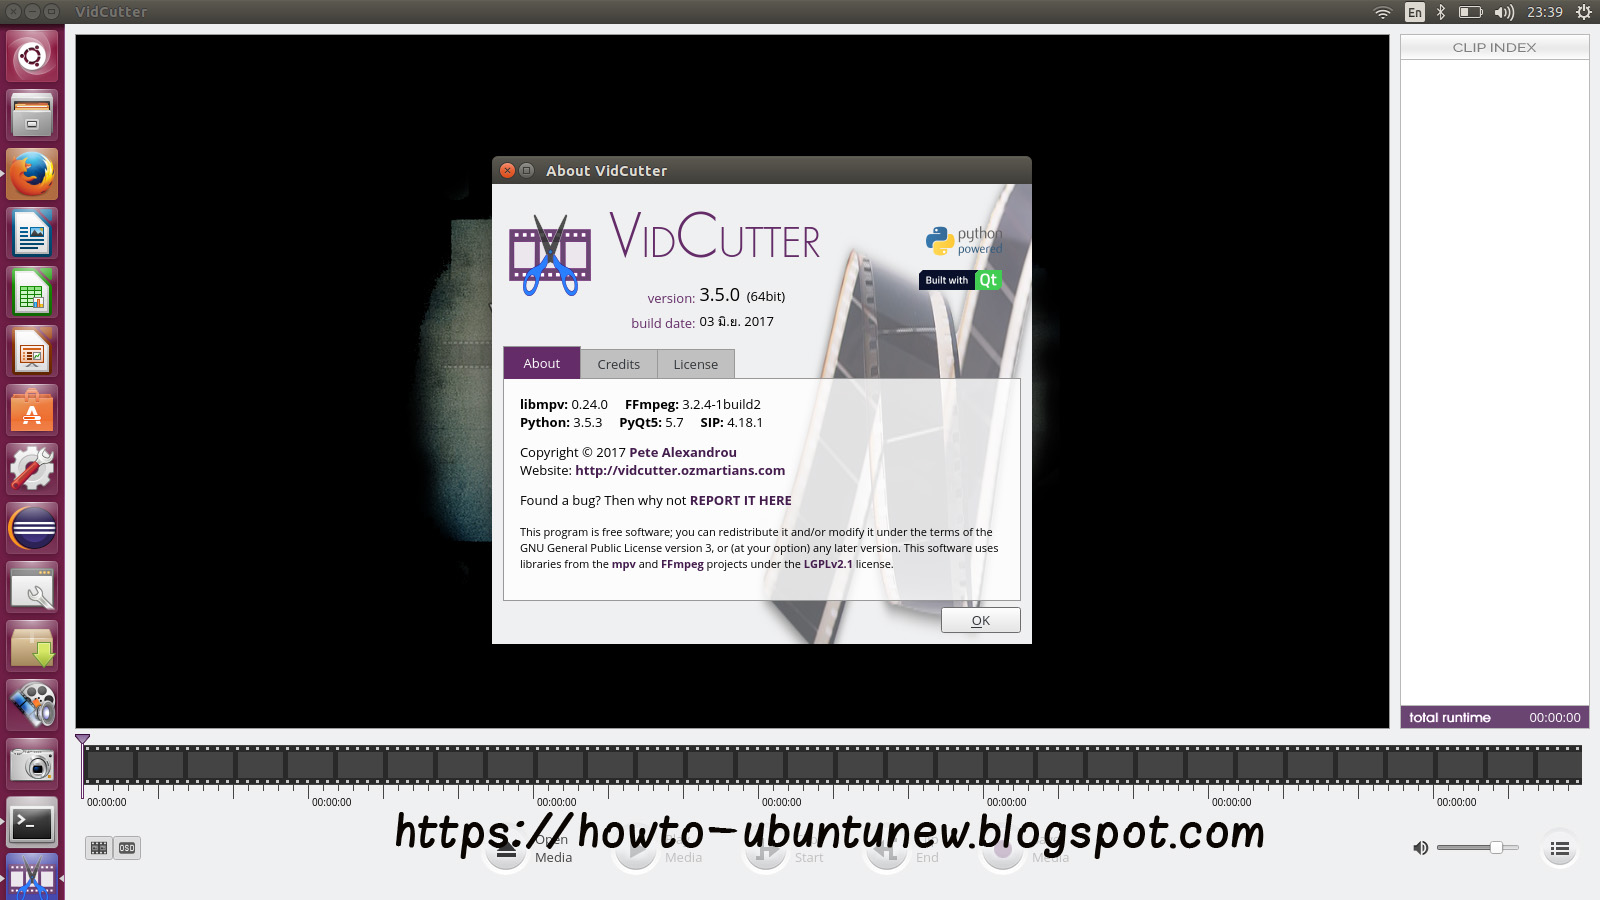 How to install program on Ubuntu: How to install VidCutter